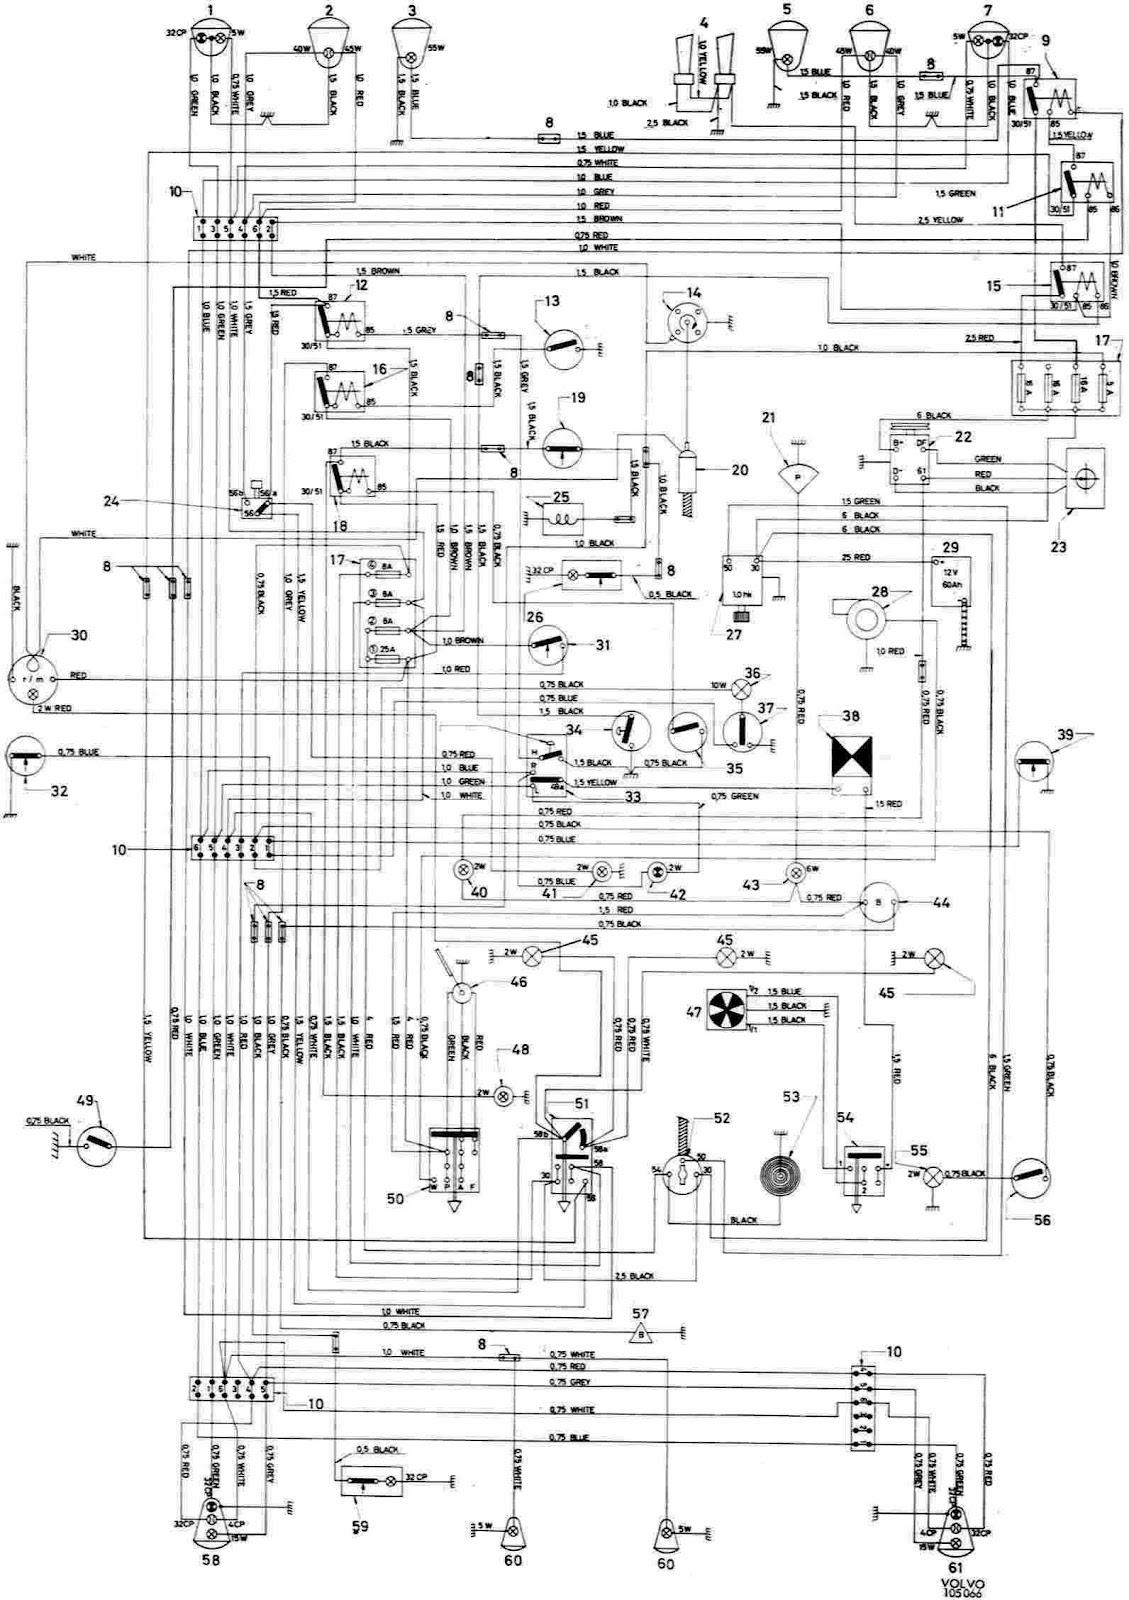 small resolution of wiring diagram further volvo 240 radio antenna along with 2005 volvo 2005 volvo s40 stereo wiring harness diagram